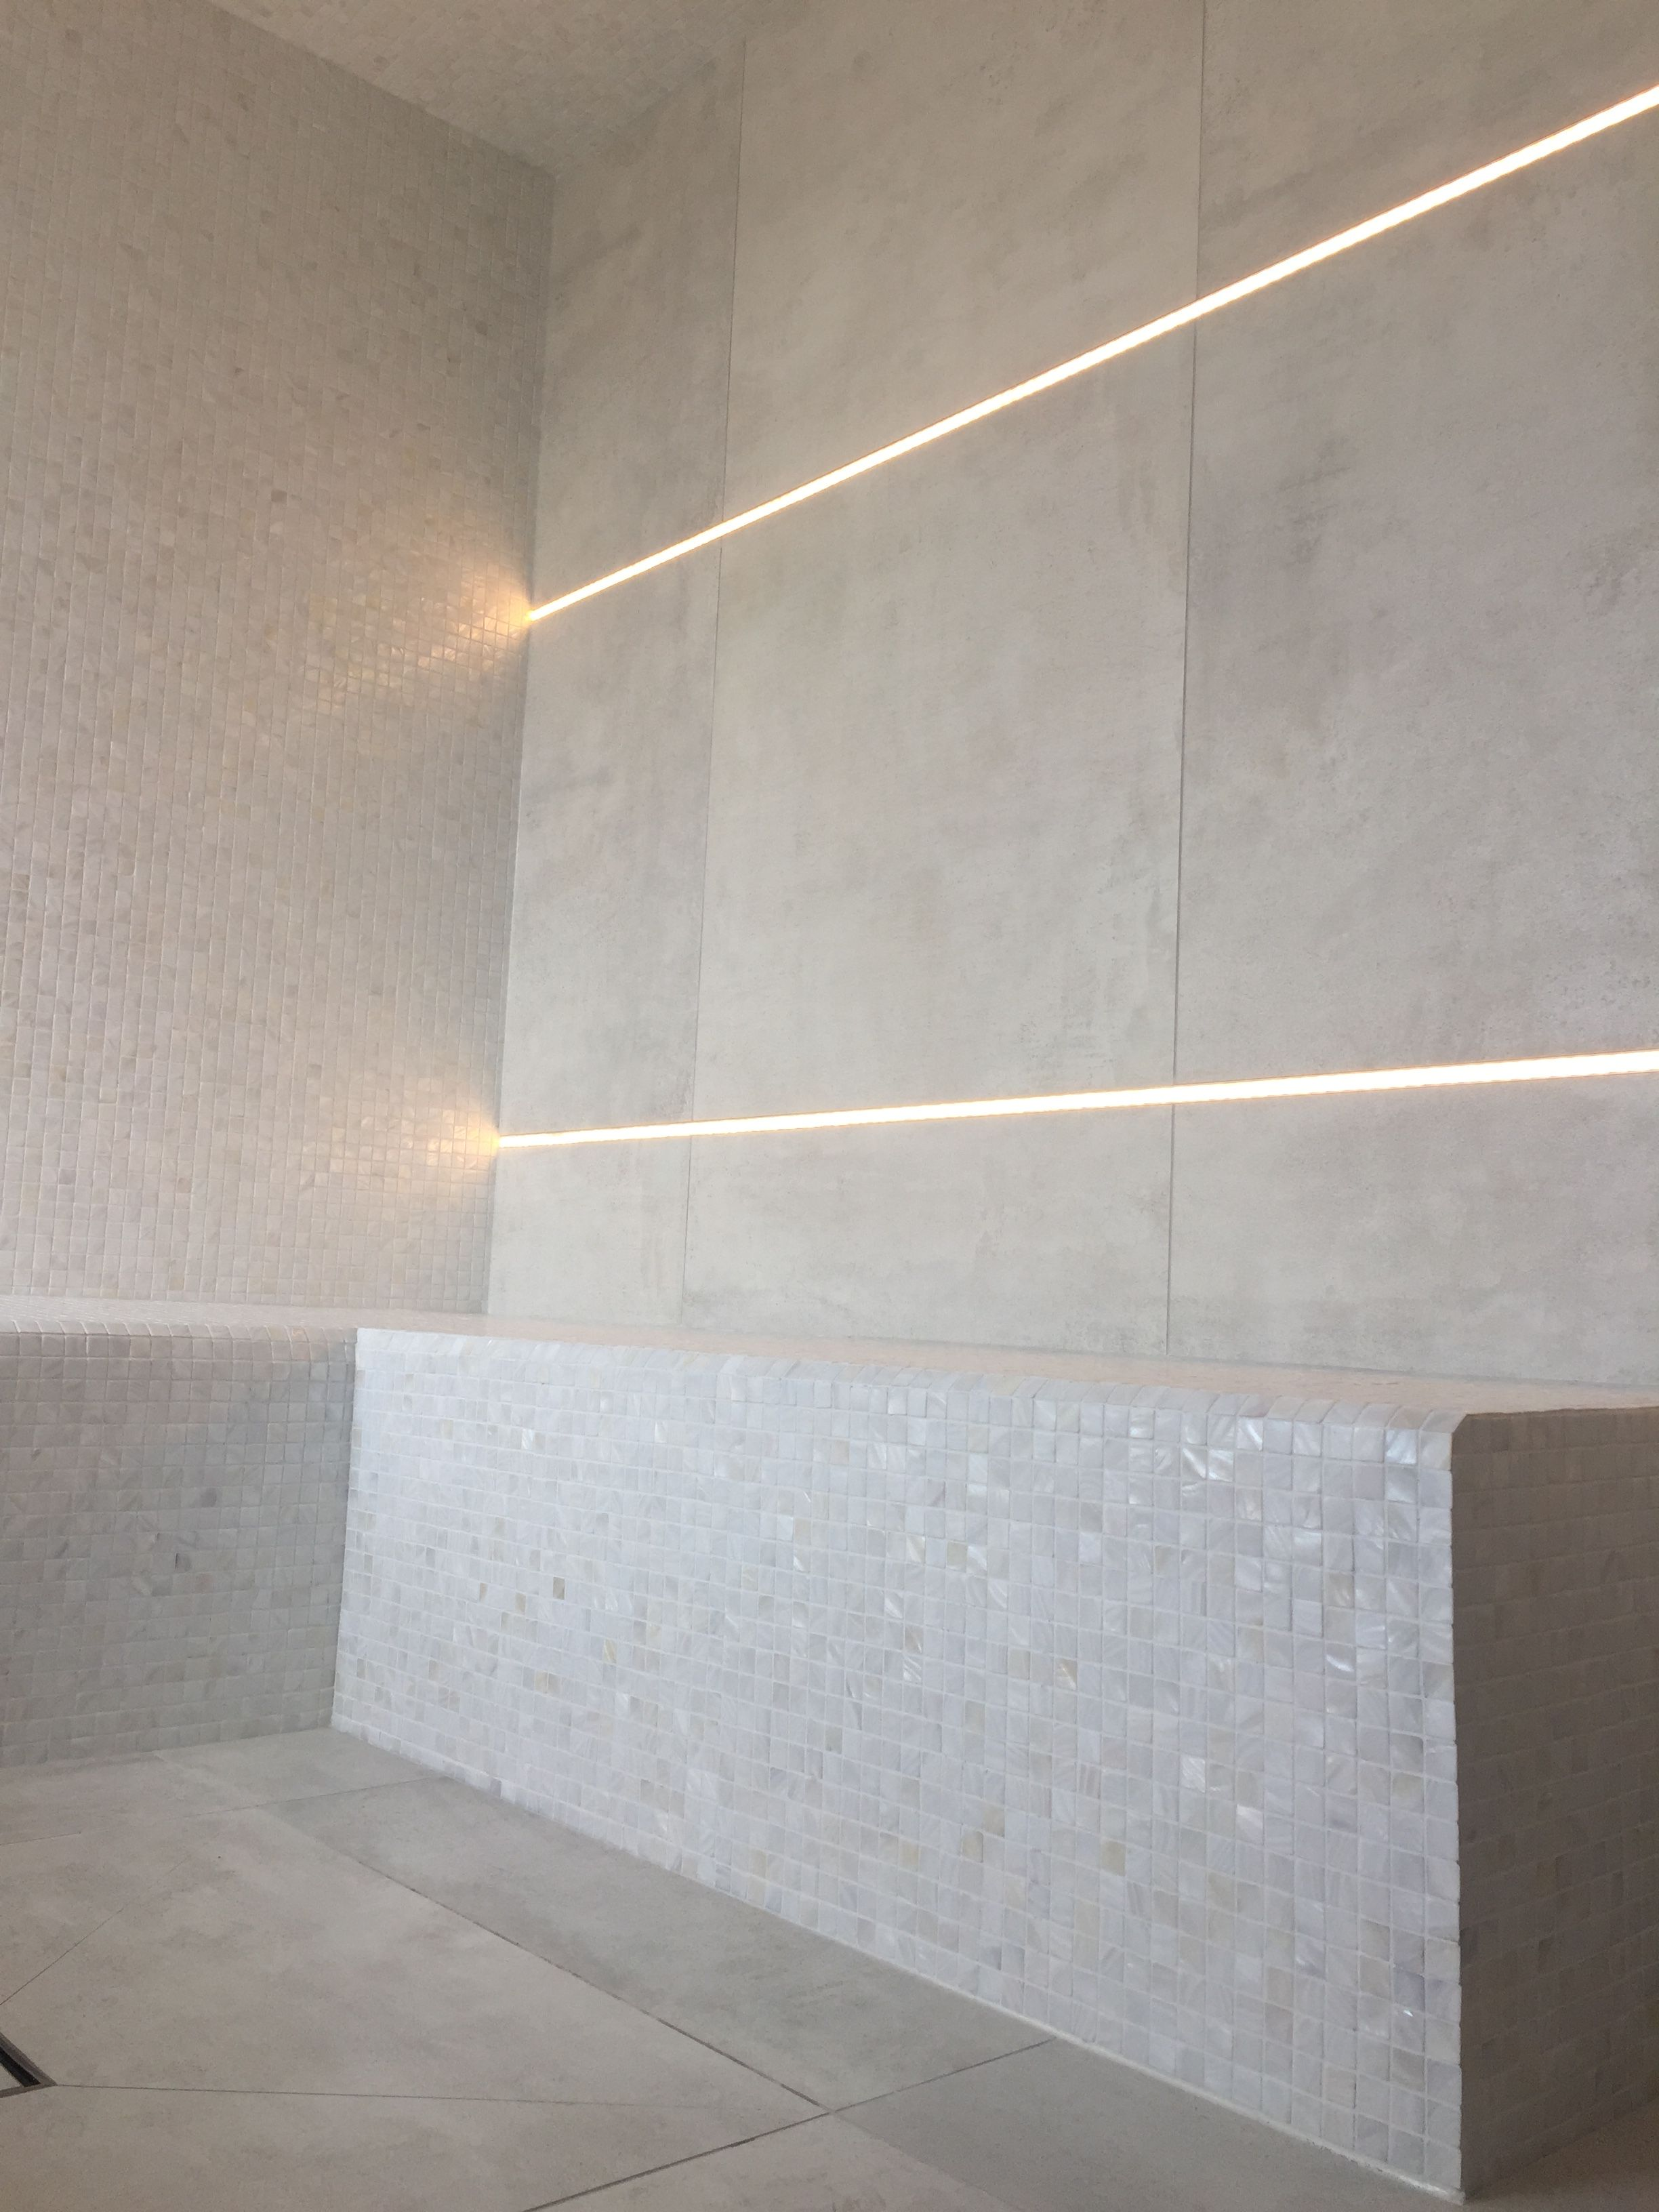 Steam Room Details Mosaic Seat Large Format Wet Floor Illuminated Lighting Embedded Into Wall Tiles Bathroom Design Luxury Steam Room Room Tiles